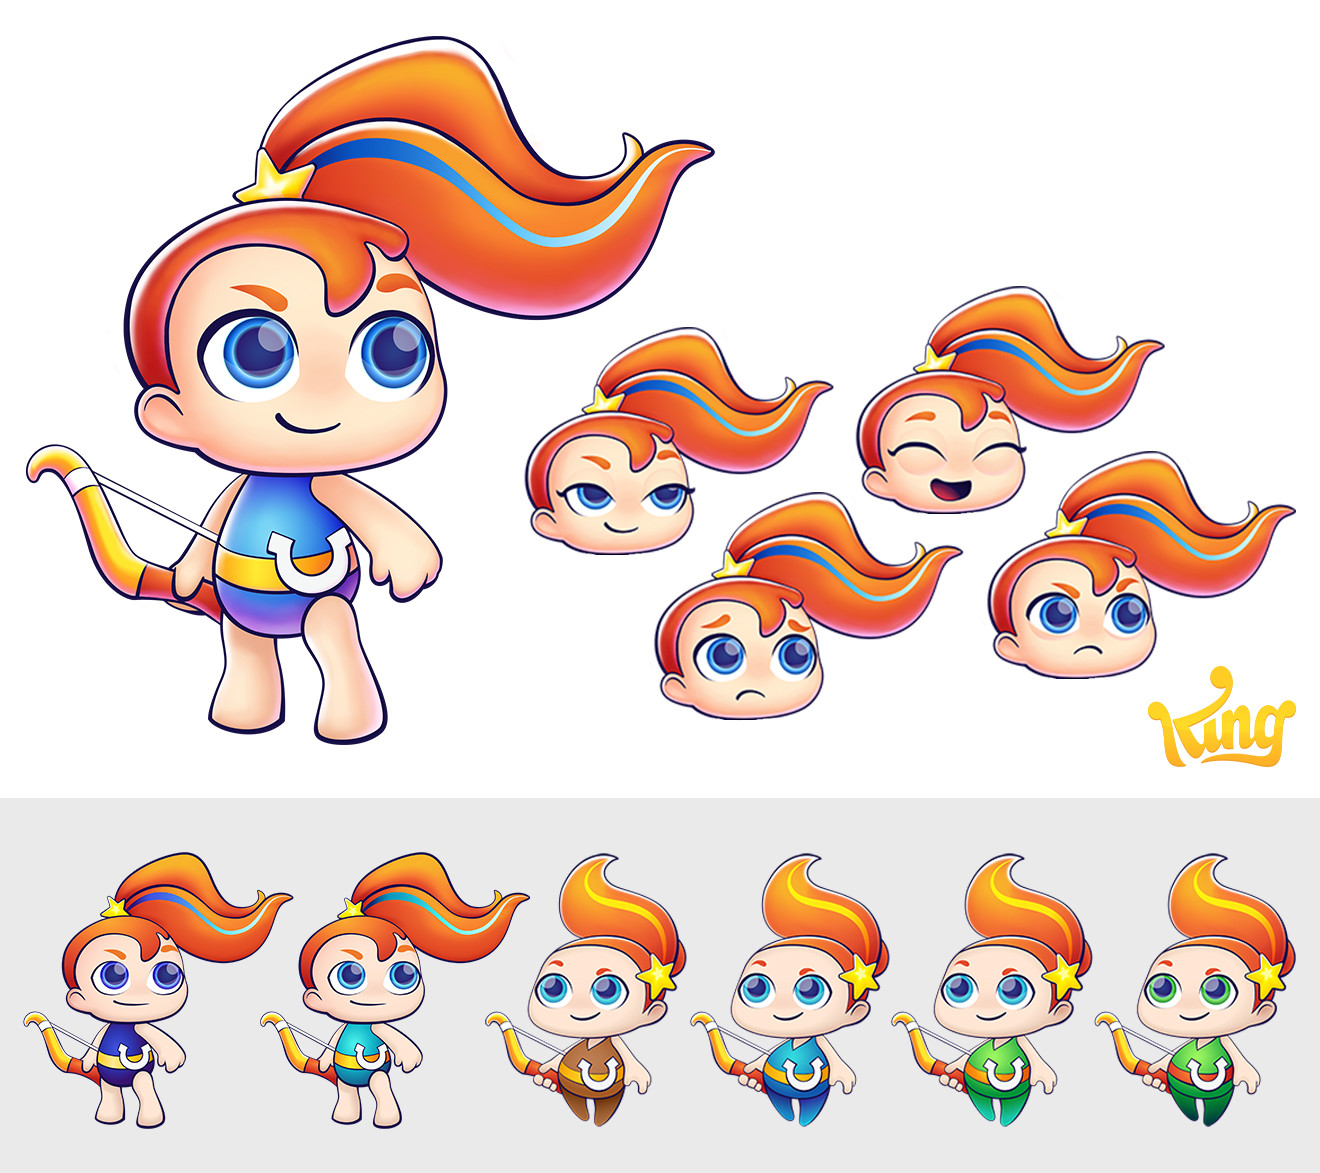 Final design of the Sagittarius character with a set of expressions. Done in Illustrator, polished in Photoshop, exported for animation in Spine. Below, color researches.